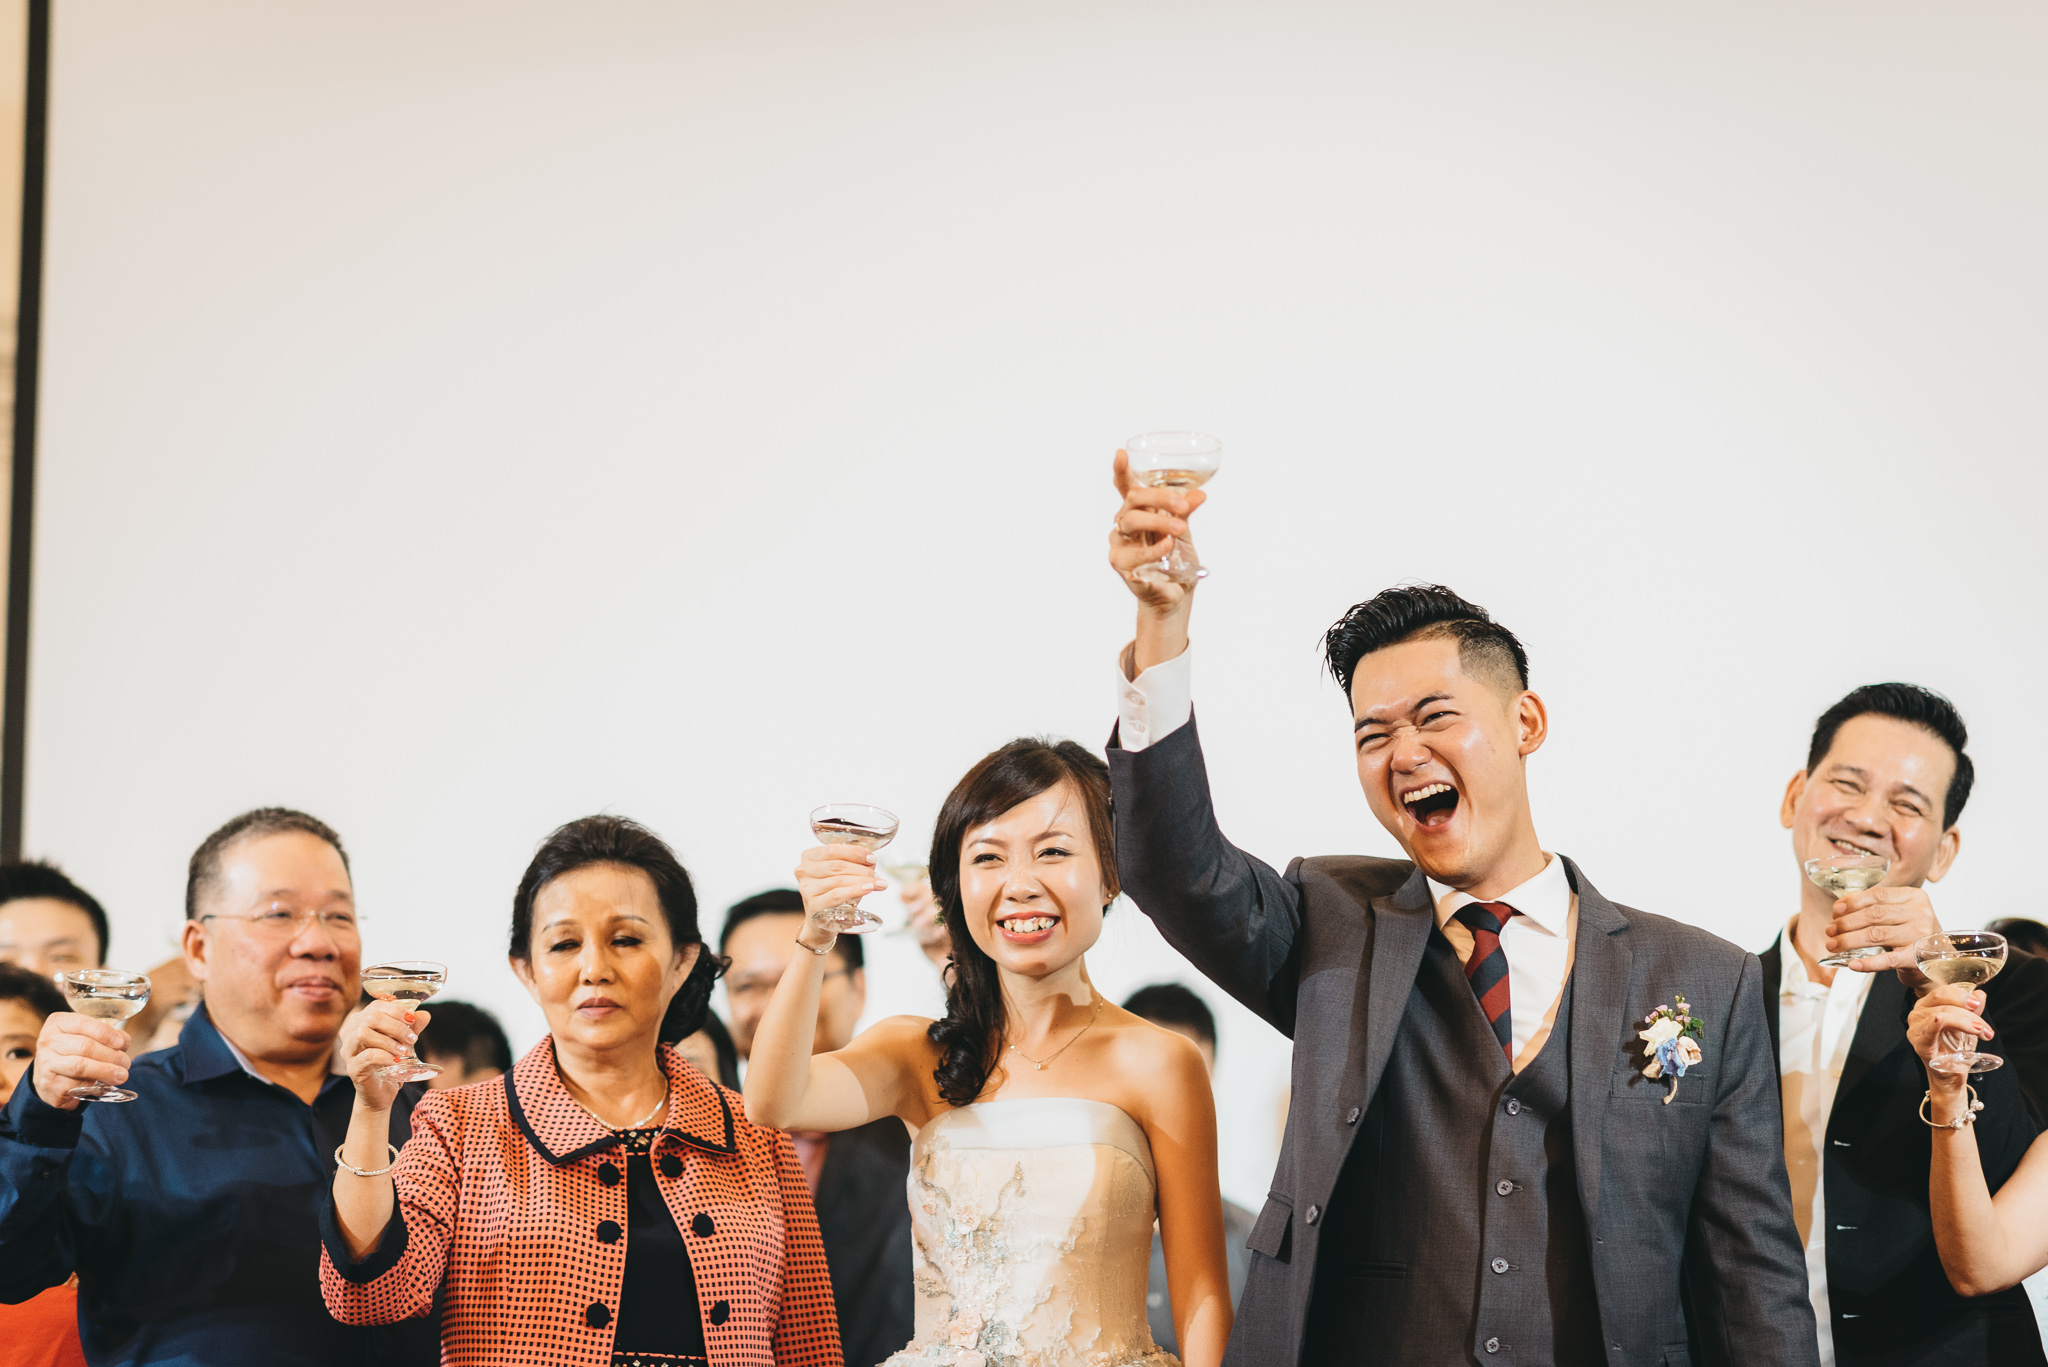 Alice & Wei Bang Wedding Day Highlights (resized for sharing) - 107.jpg